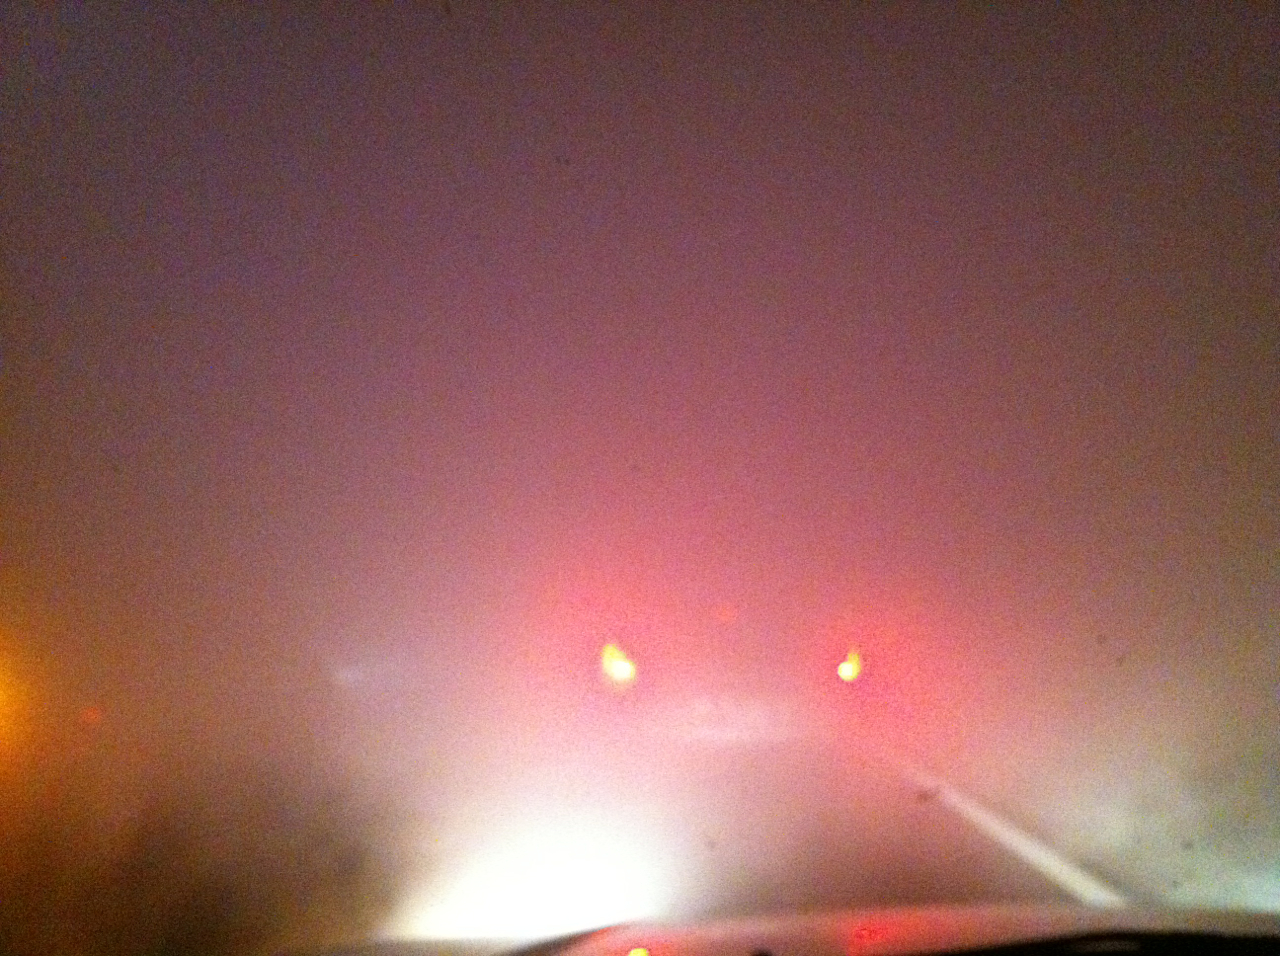 Cars braking during dense smoke on I-75 on the night of the multi-vehicle accident (photo by Ronny Herrera)